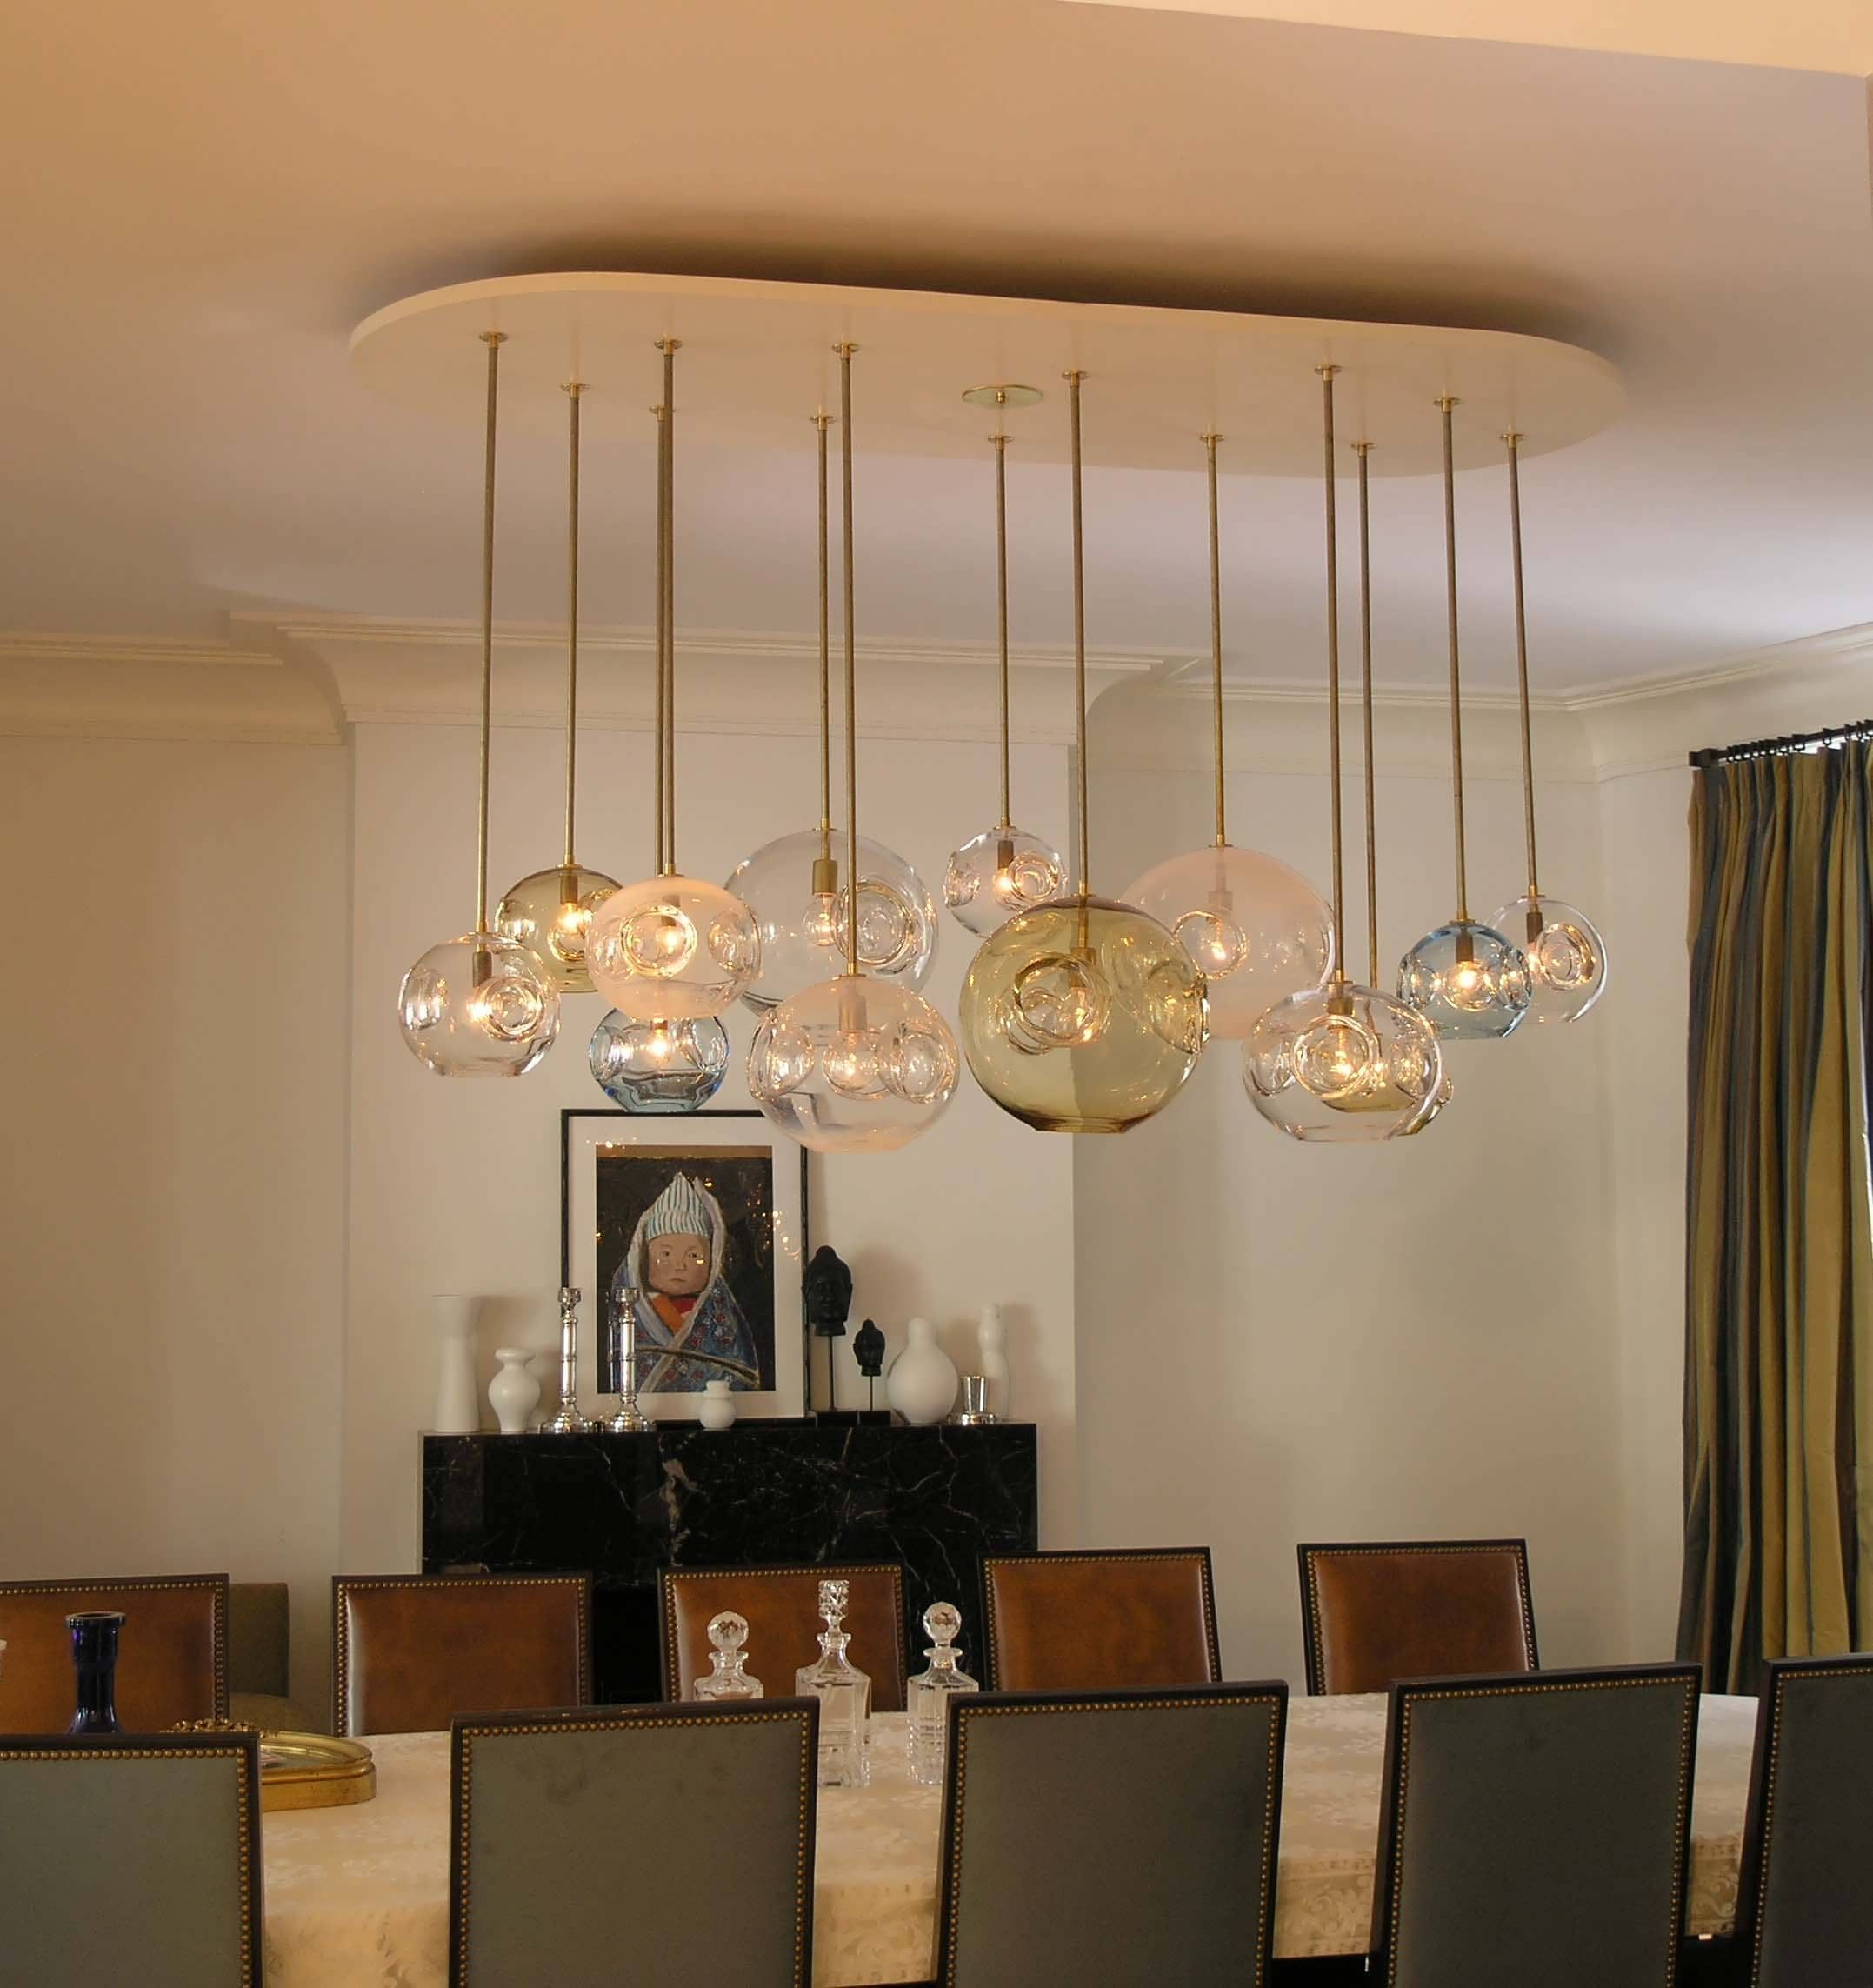 Chandelier Room Lights Chandeliers Uk Rectangular Light Fixtures For Dining Rooms D Dining Room Light Fixtures Modern Dining Room Lighting Dining Room Lighting